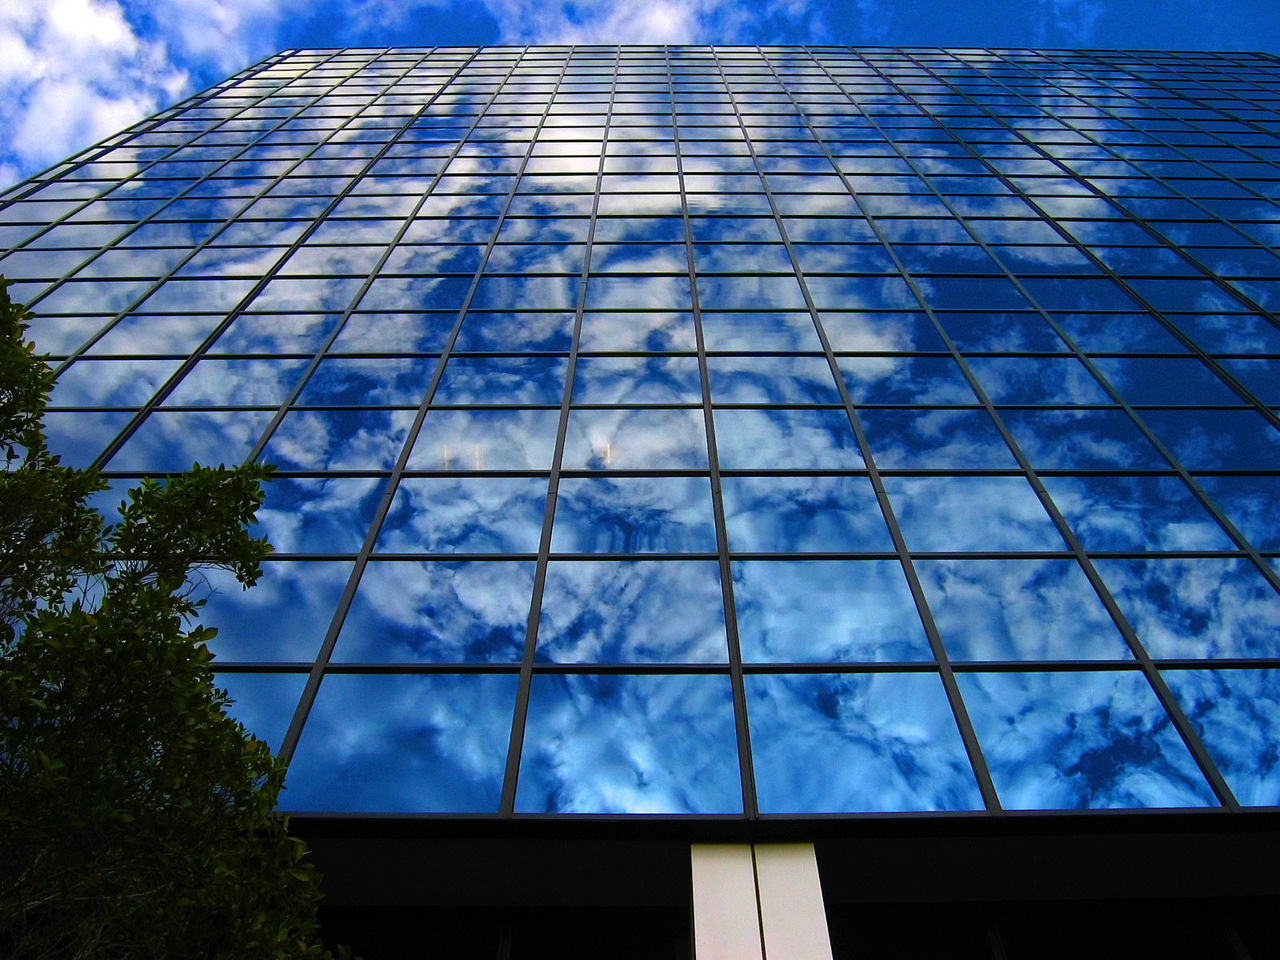 low angle view, sky, architecture, cloud - sky, built structure, blue, modern, day, building exterior, no people, outdoors, growth, skyscraper, nature, tree, city